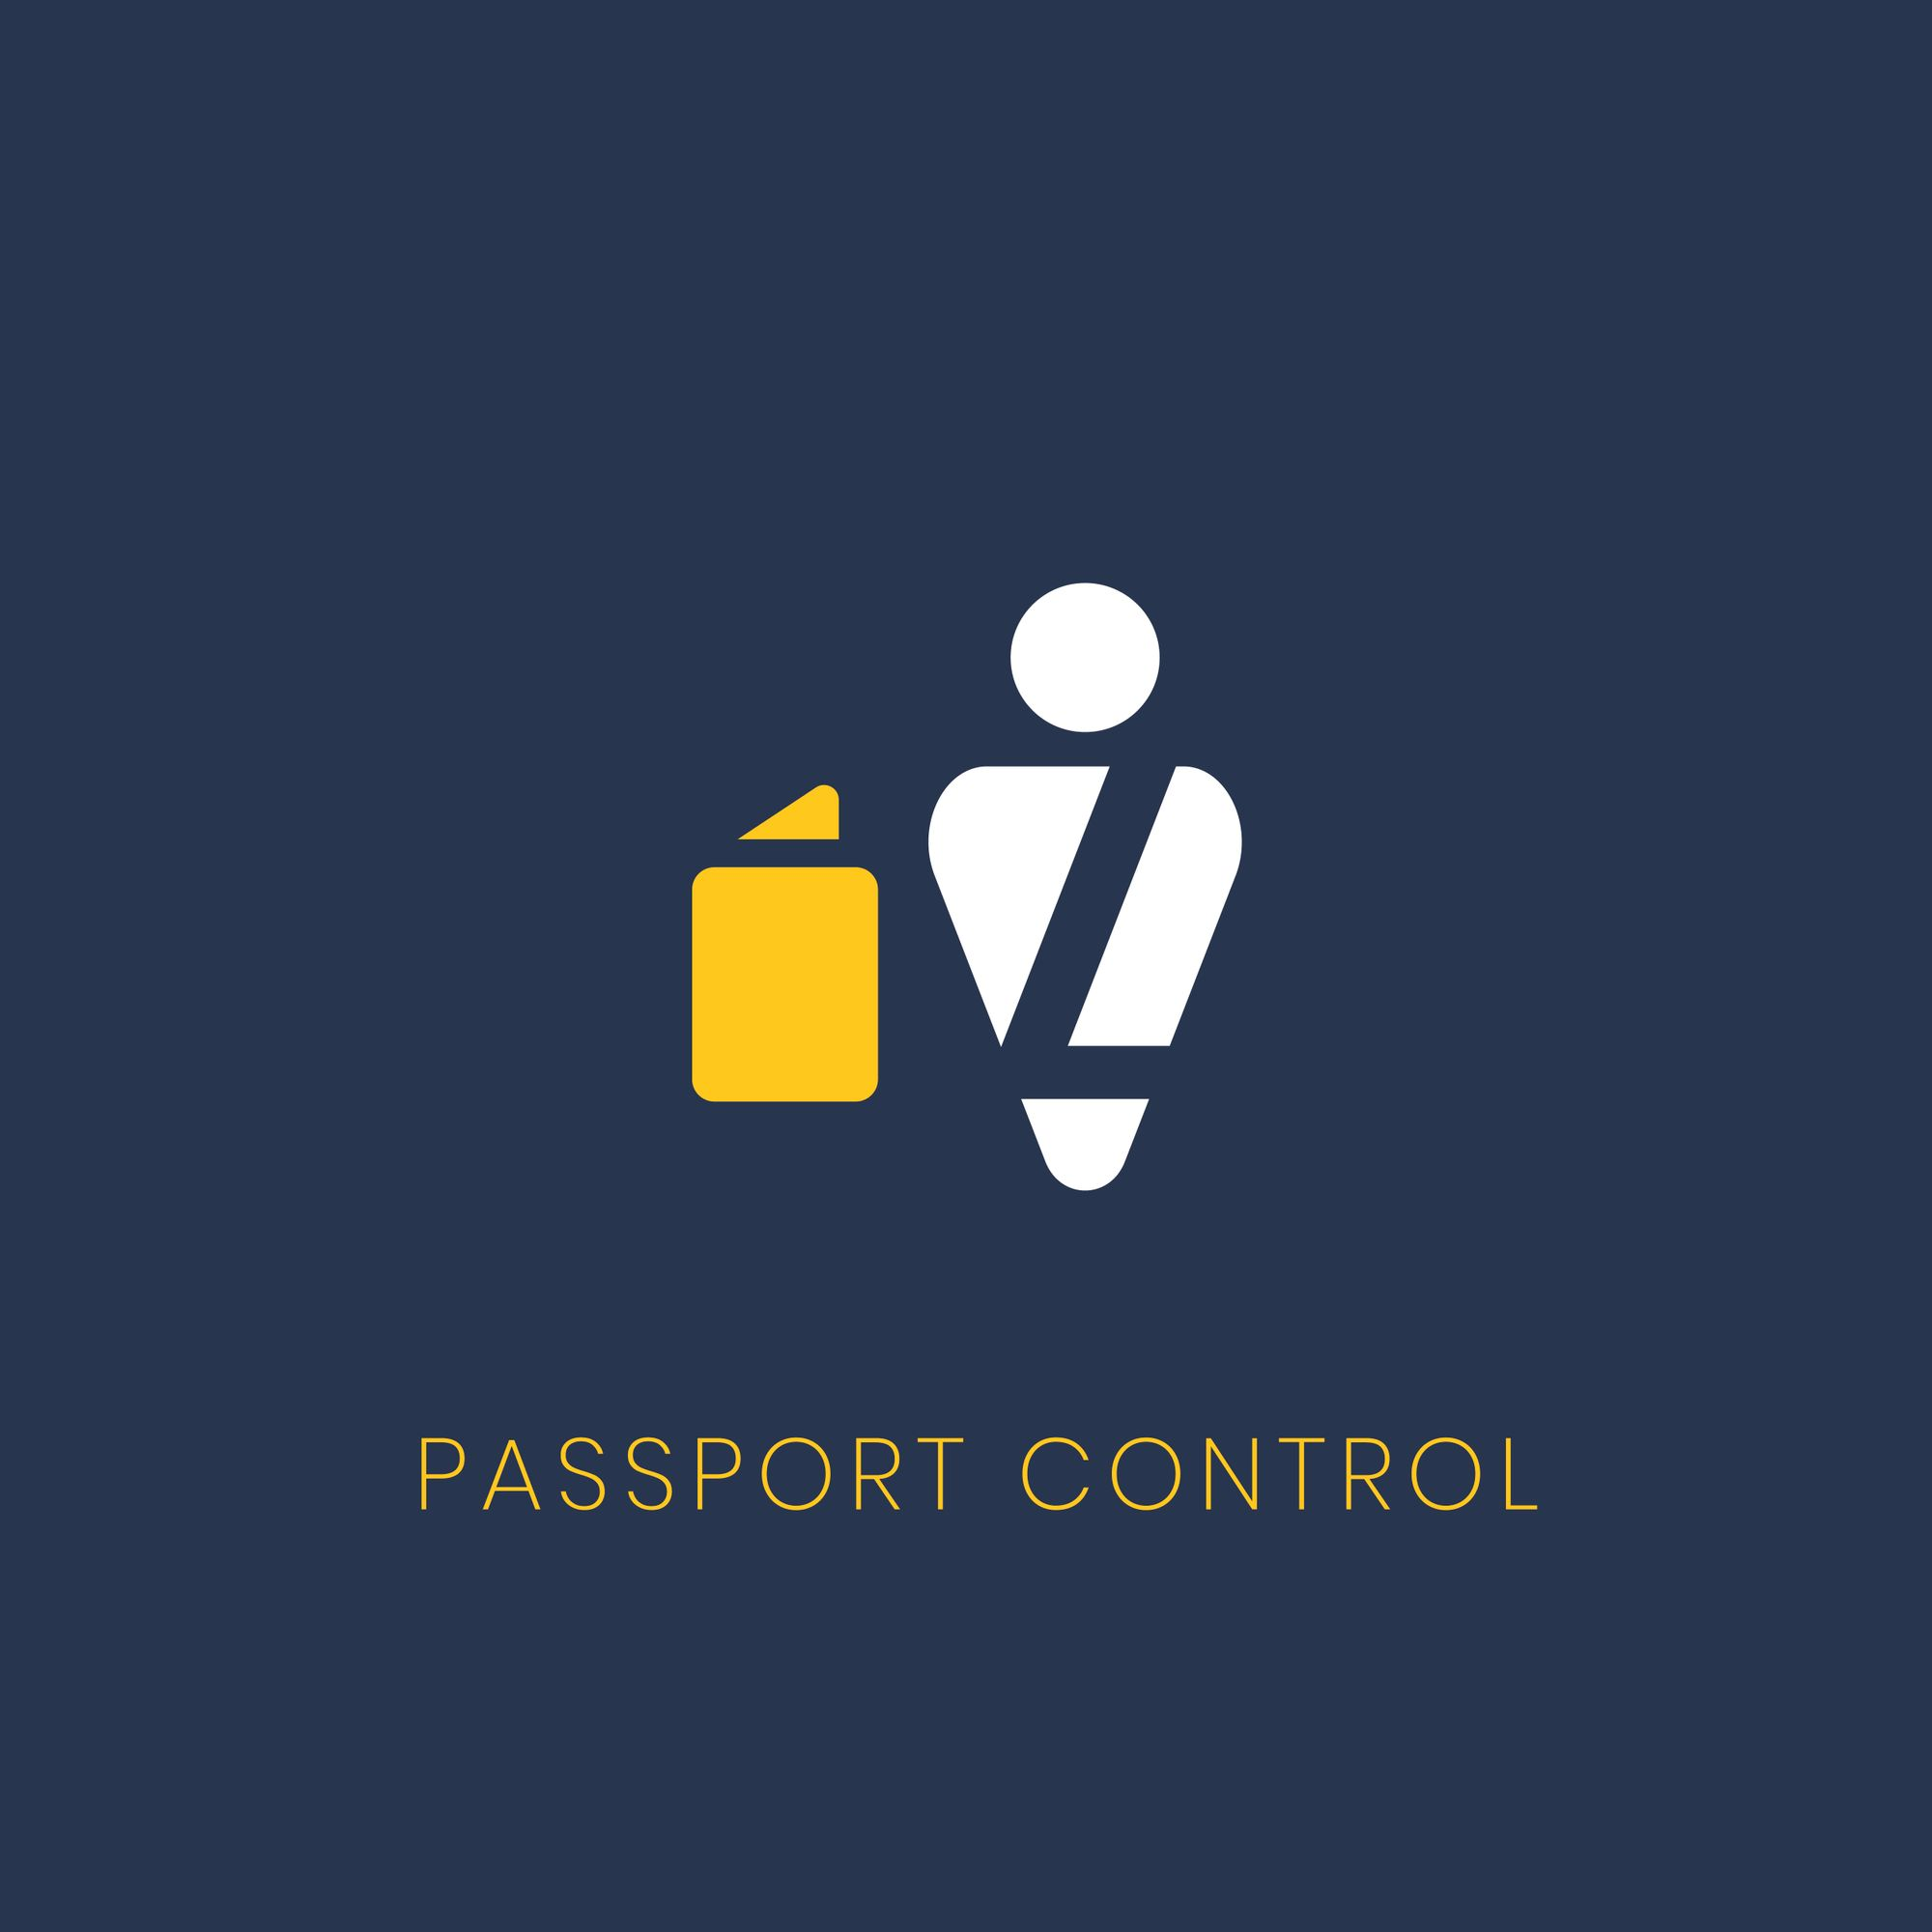 Passport-control-image-from-rawpixel-id-538321-jpeg